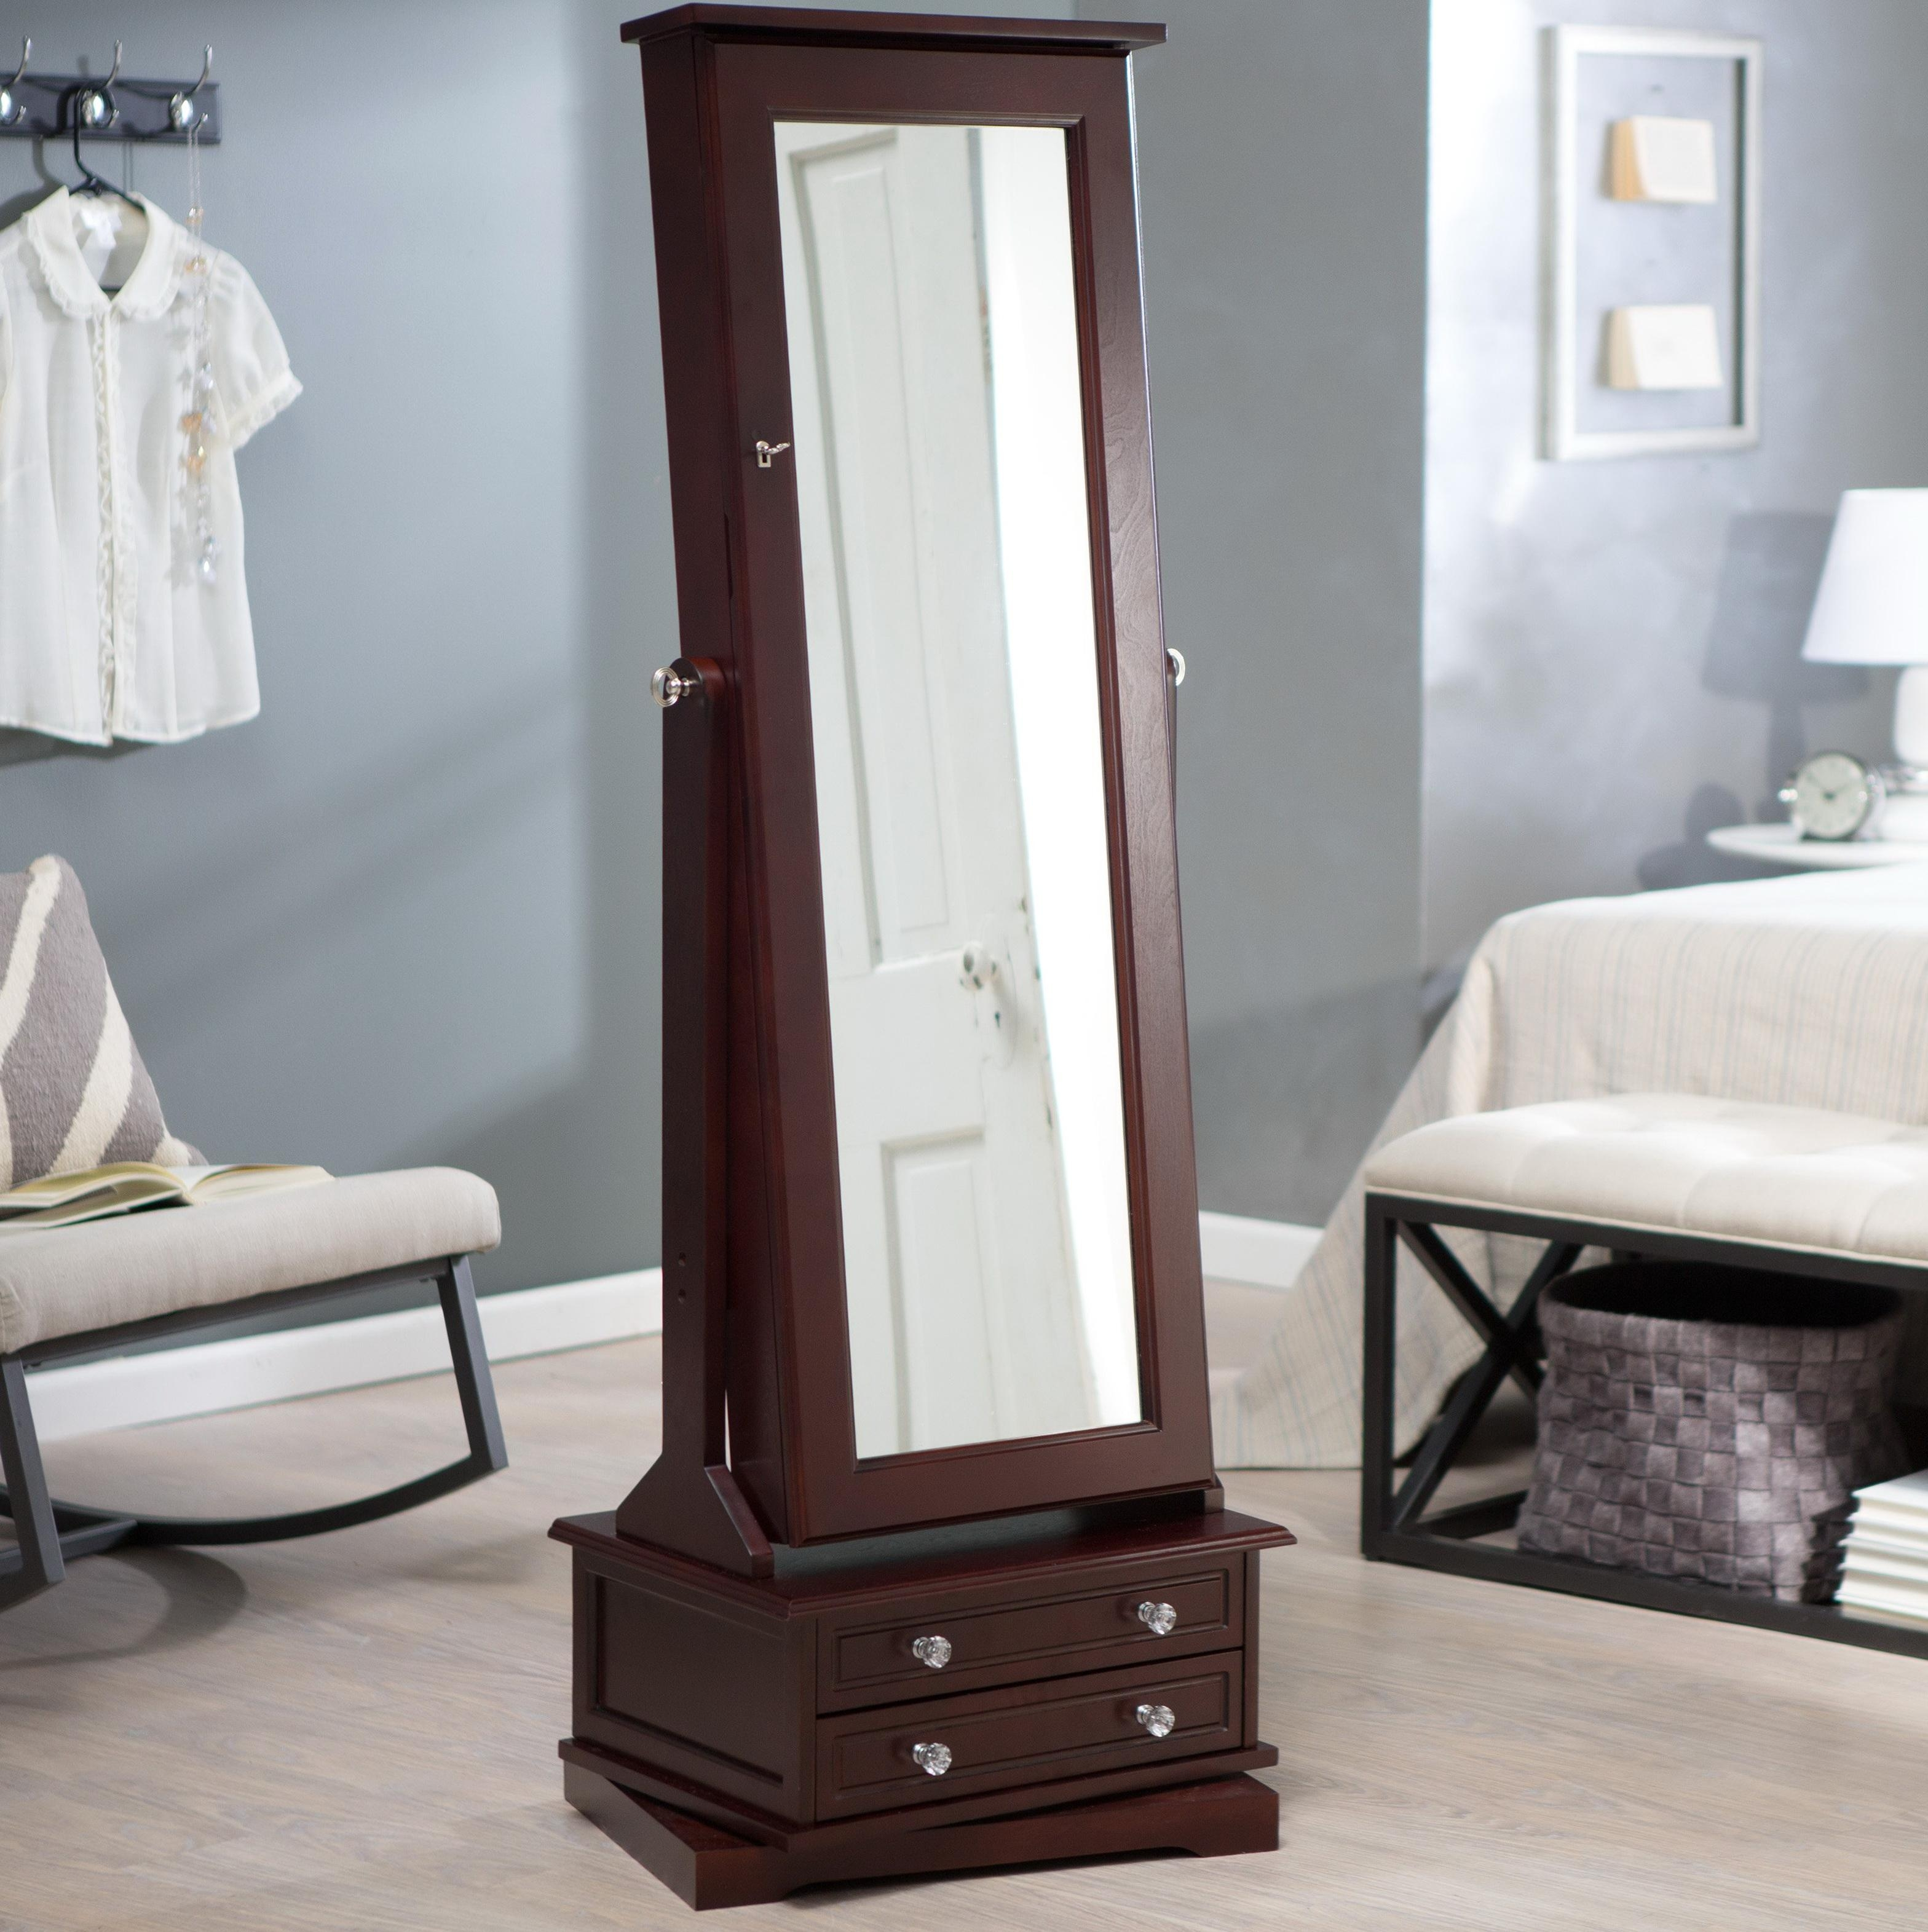 Bedroom Furniture : Floor Mirror White Floor Mirror Shabby Chic Intended For Large Shabby Chic Mirrors (View 20 of 20)